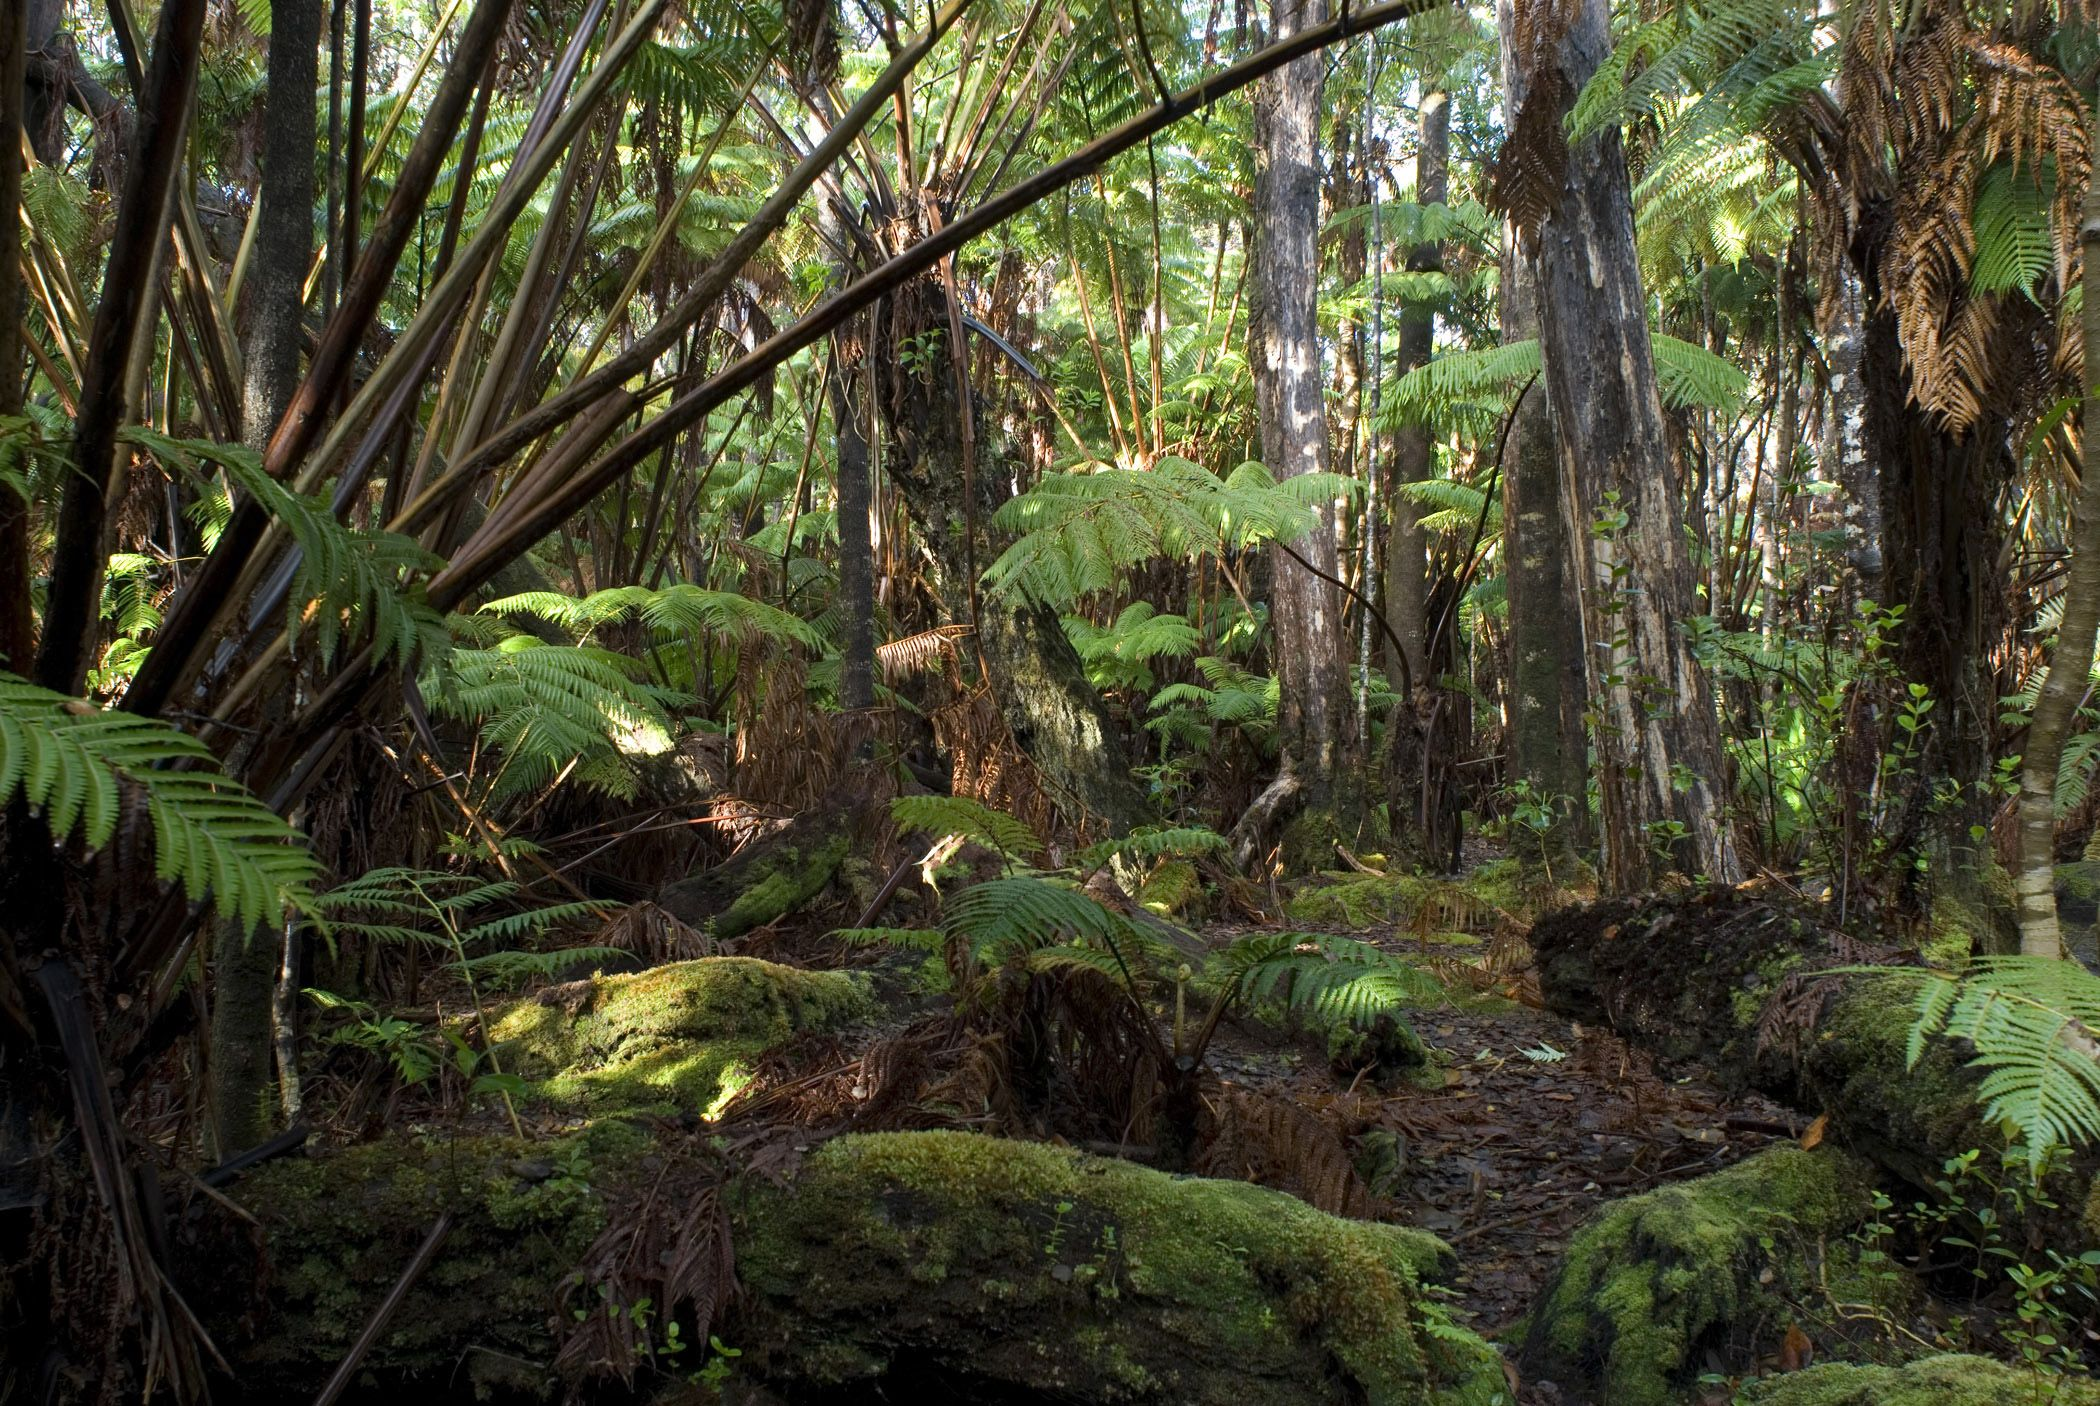 forest images Hawaiian rainforest background with dense